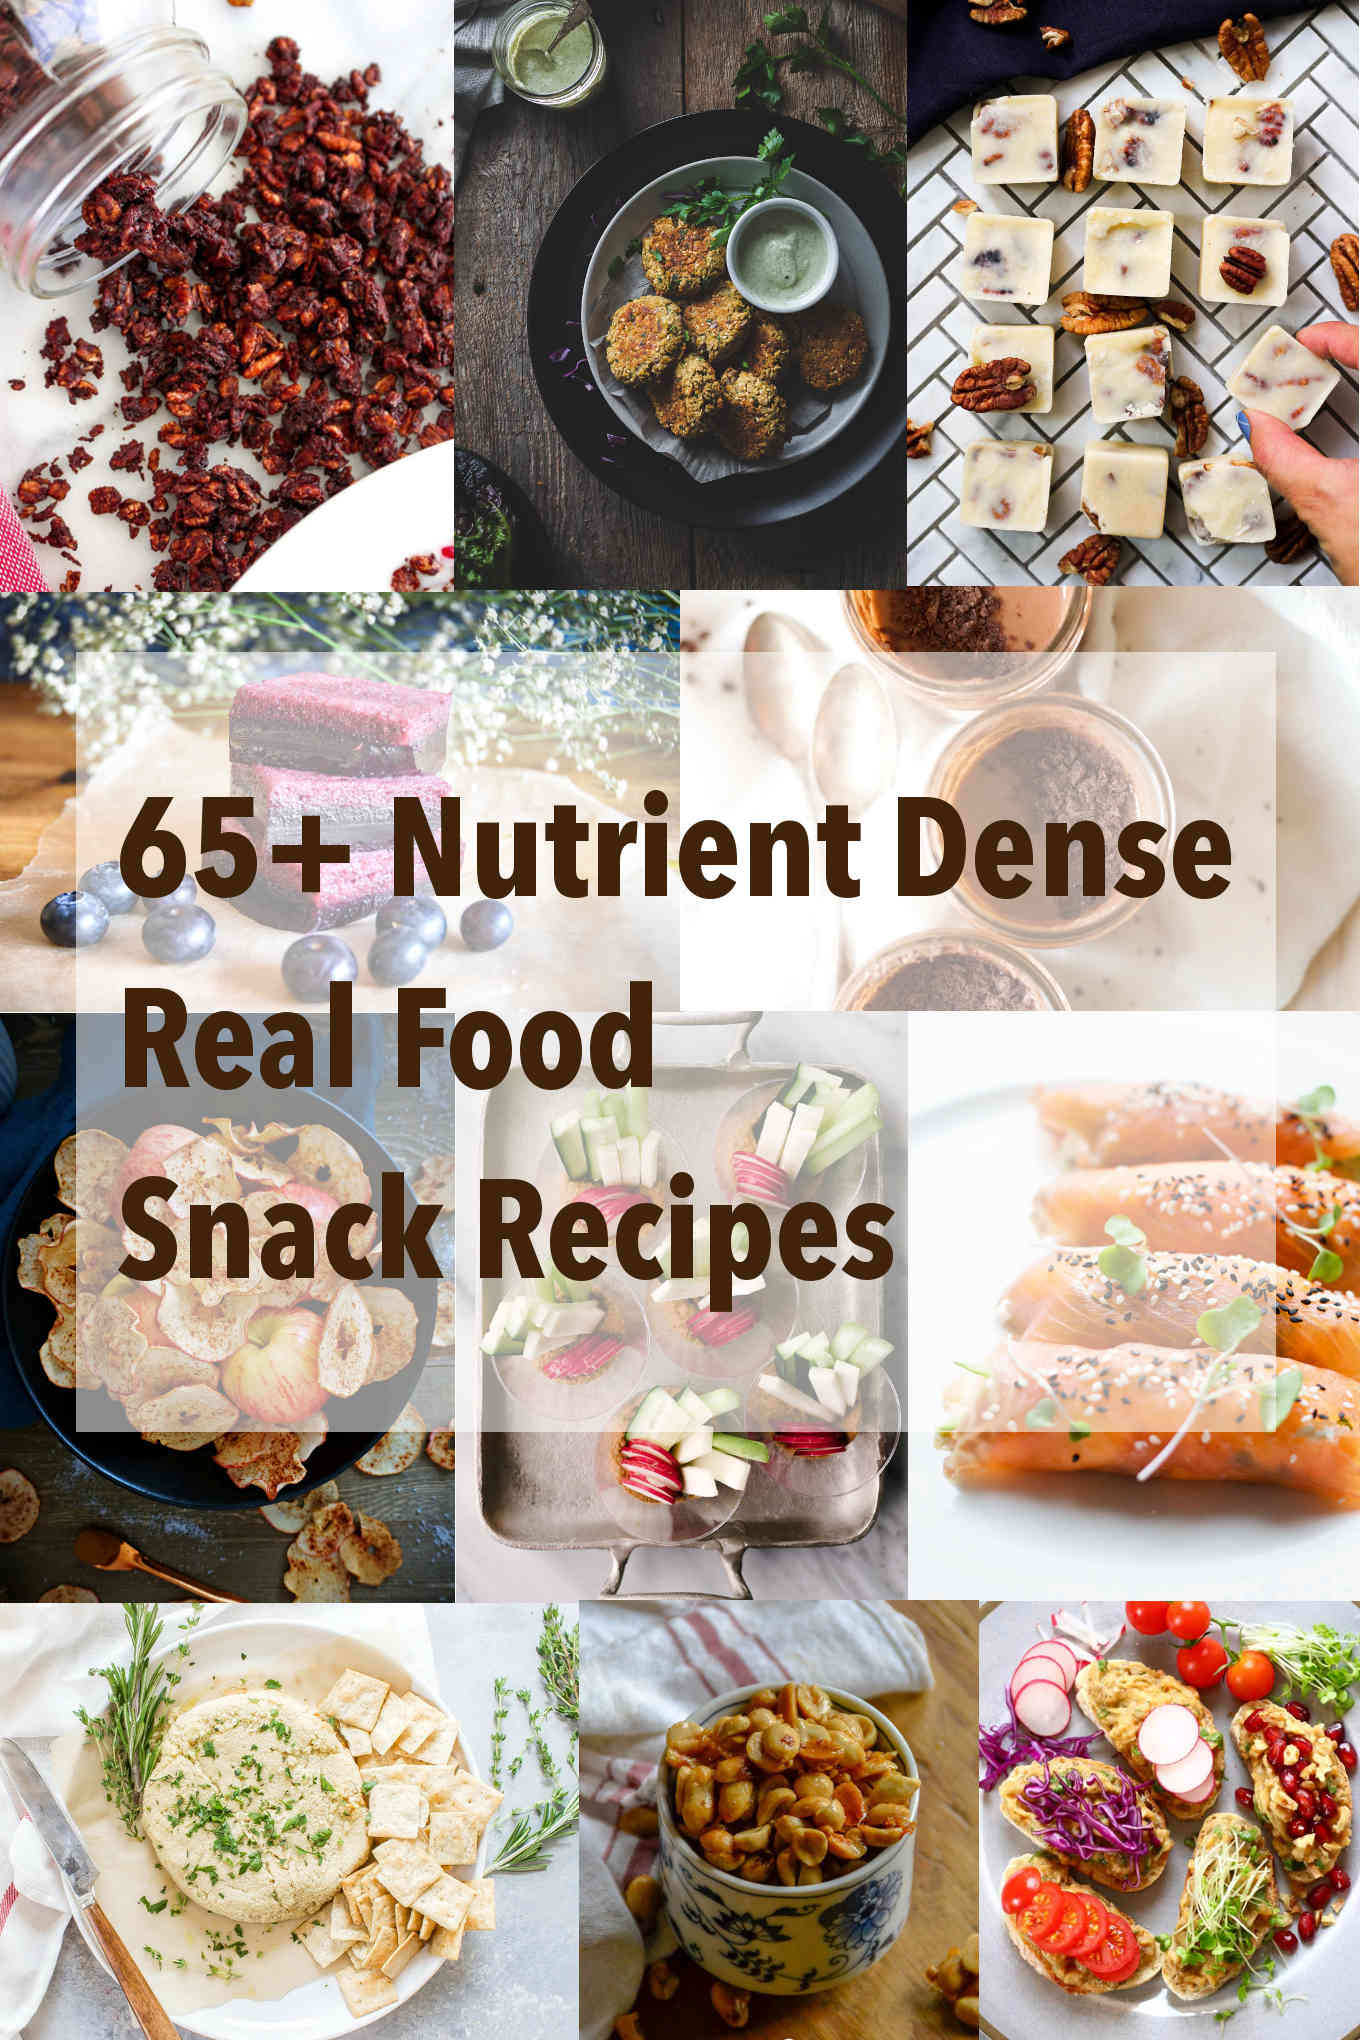 65+ Nutrient Dense Real Food Snack Recipes